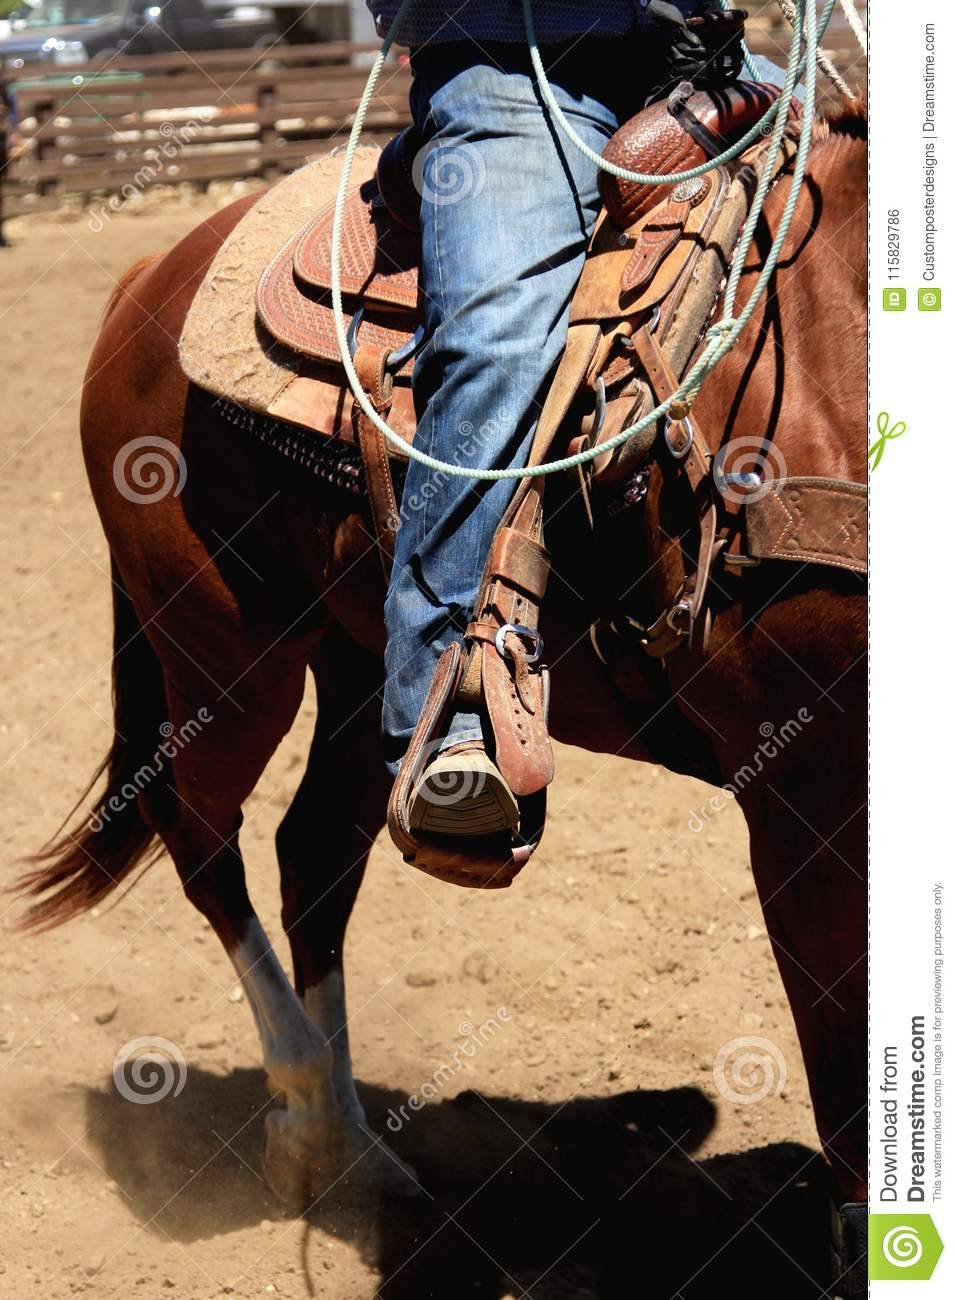 Download Cowboy Riding A Horse With The Stirrup In Front. Stock Photo - Image of photo, jeans: 115829786